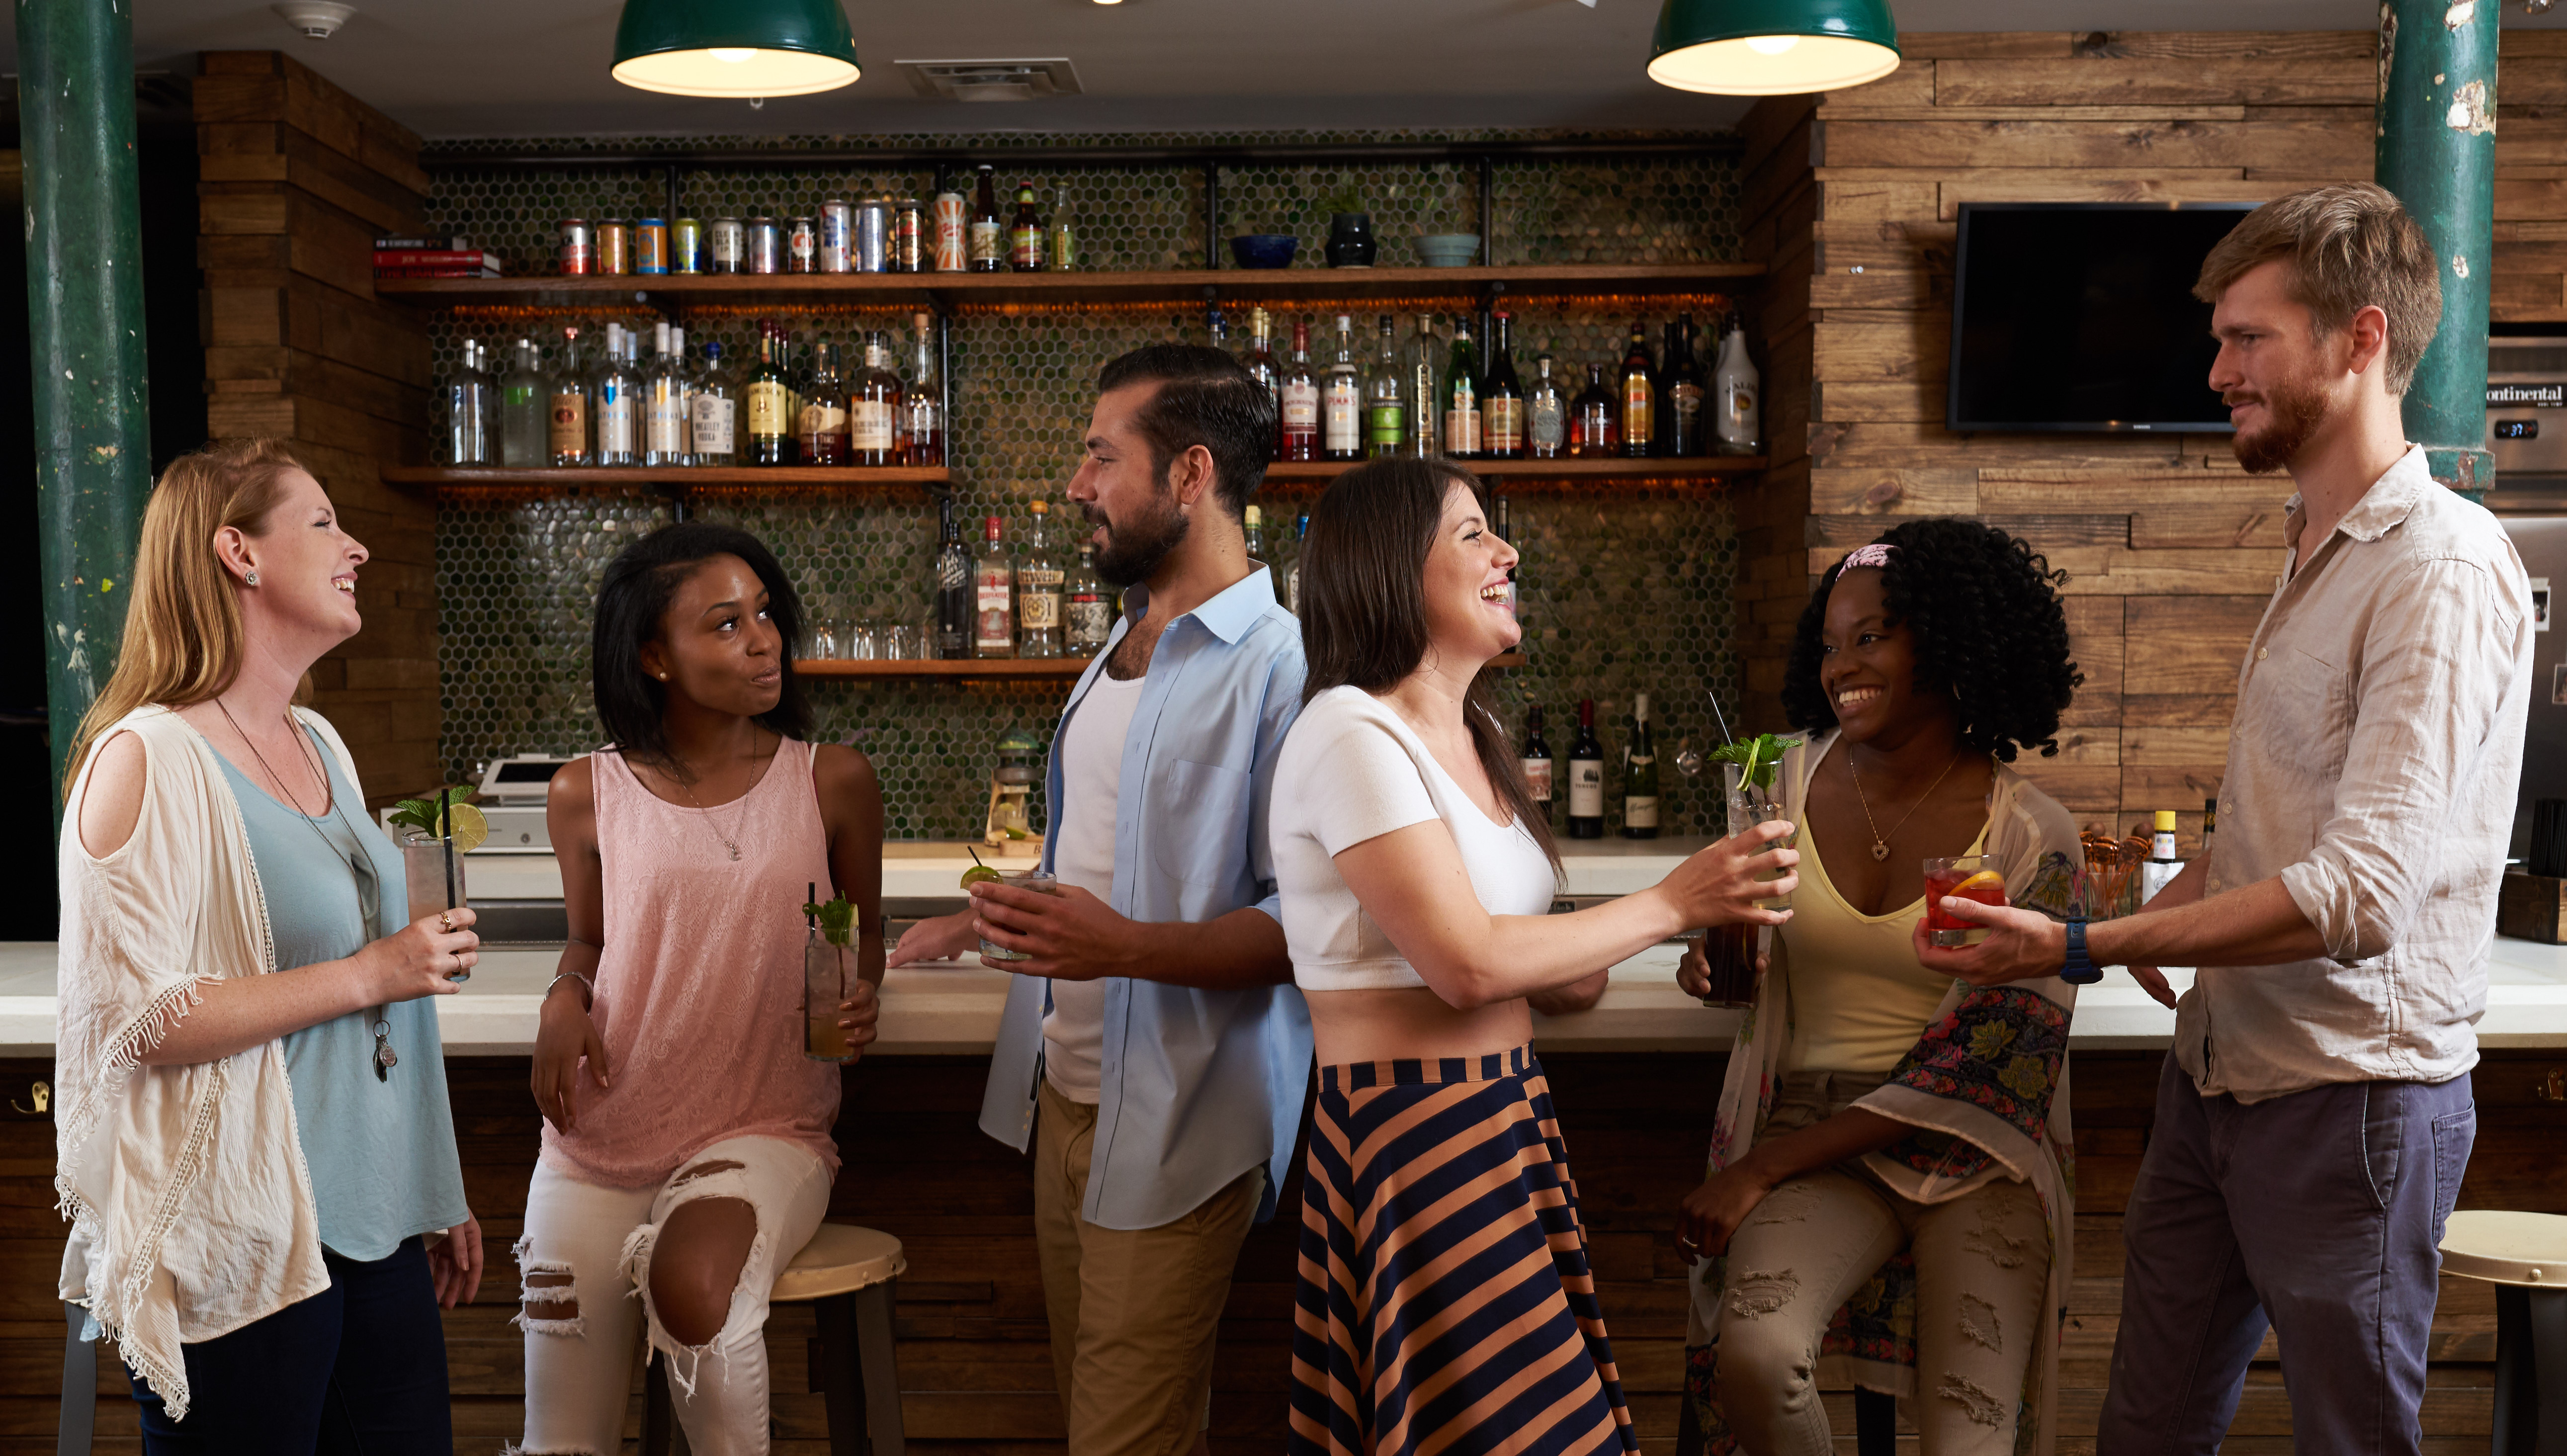 The Quisby's lobby bar is a fun place to chat, meet new people and enjoy a drink from the fully-stocked bar